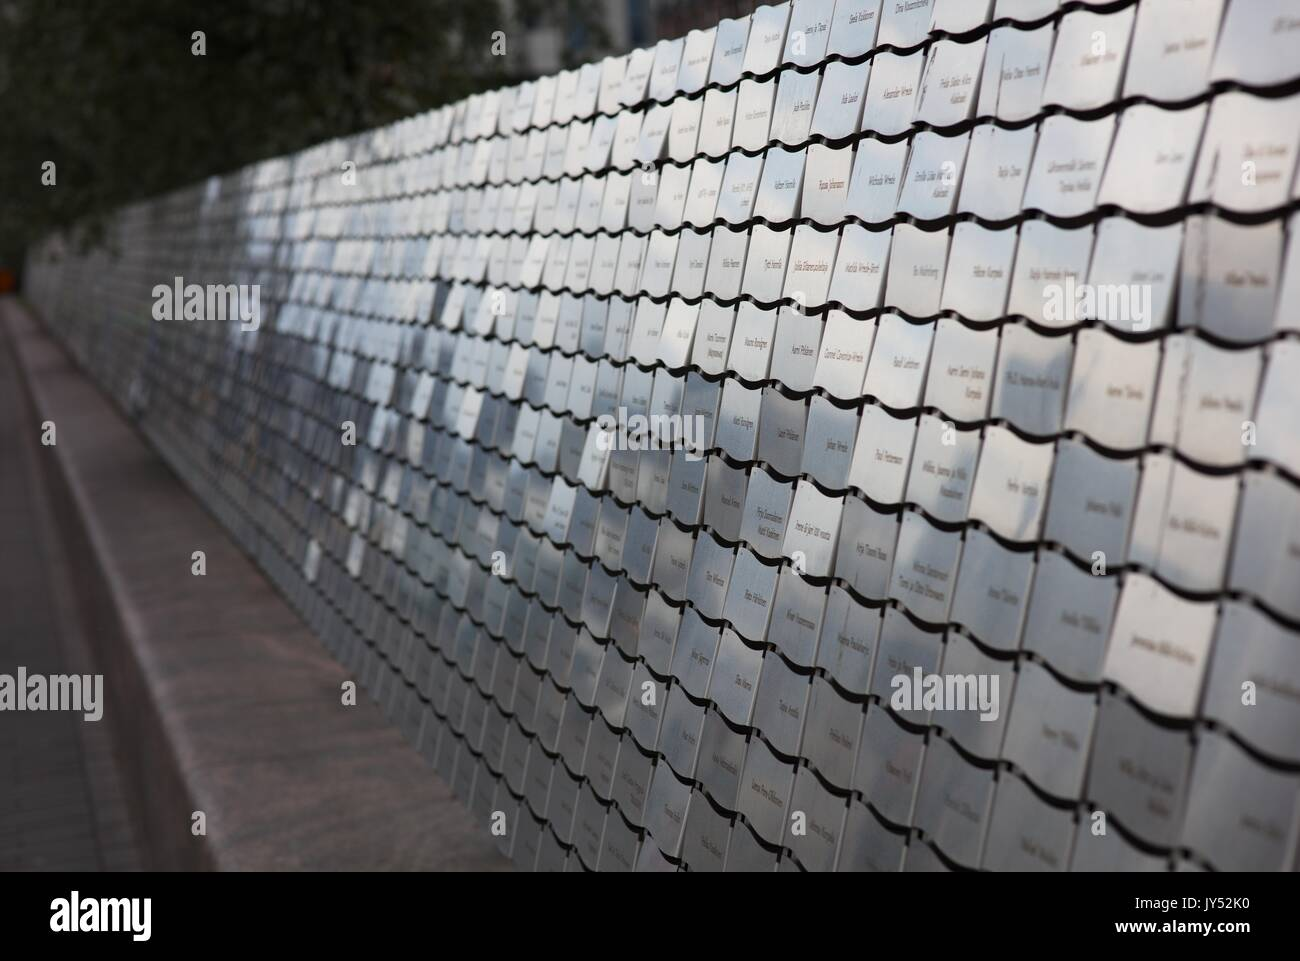 The Horizon, The Baltic Sea, Art, Helsinki, Finland, consists of 4225 plates or gleams with names - Stock Image